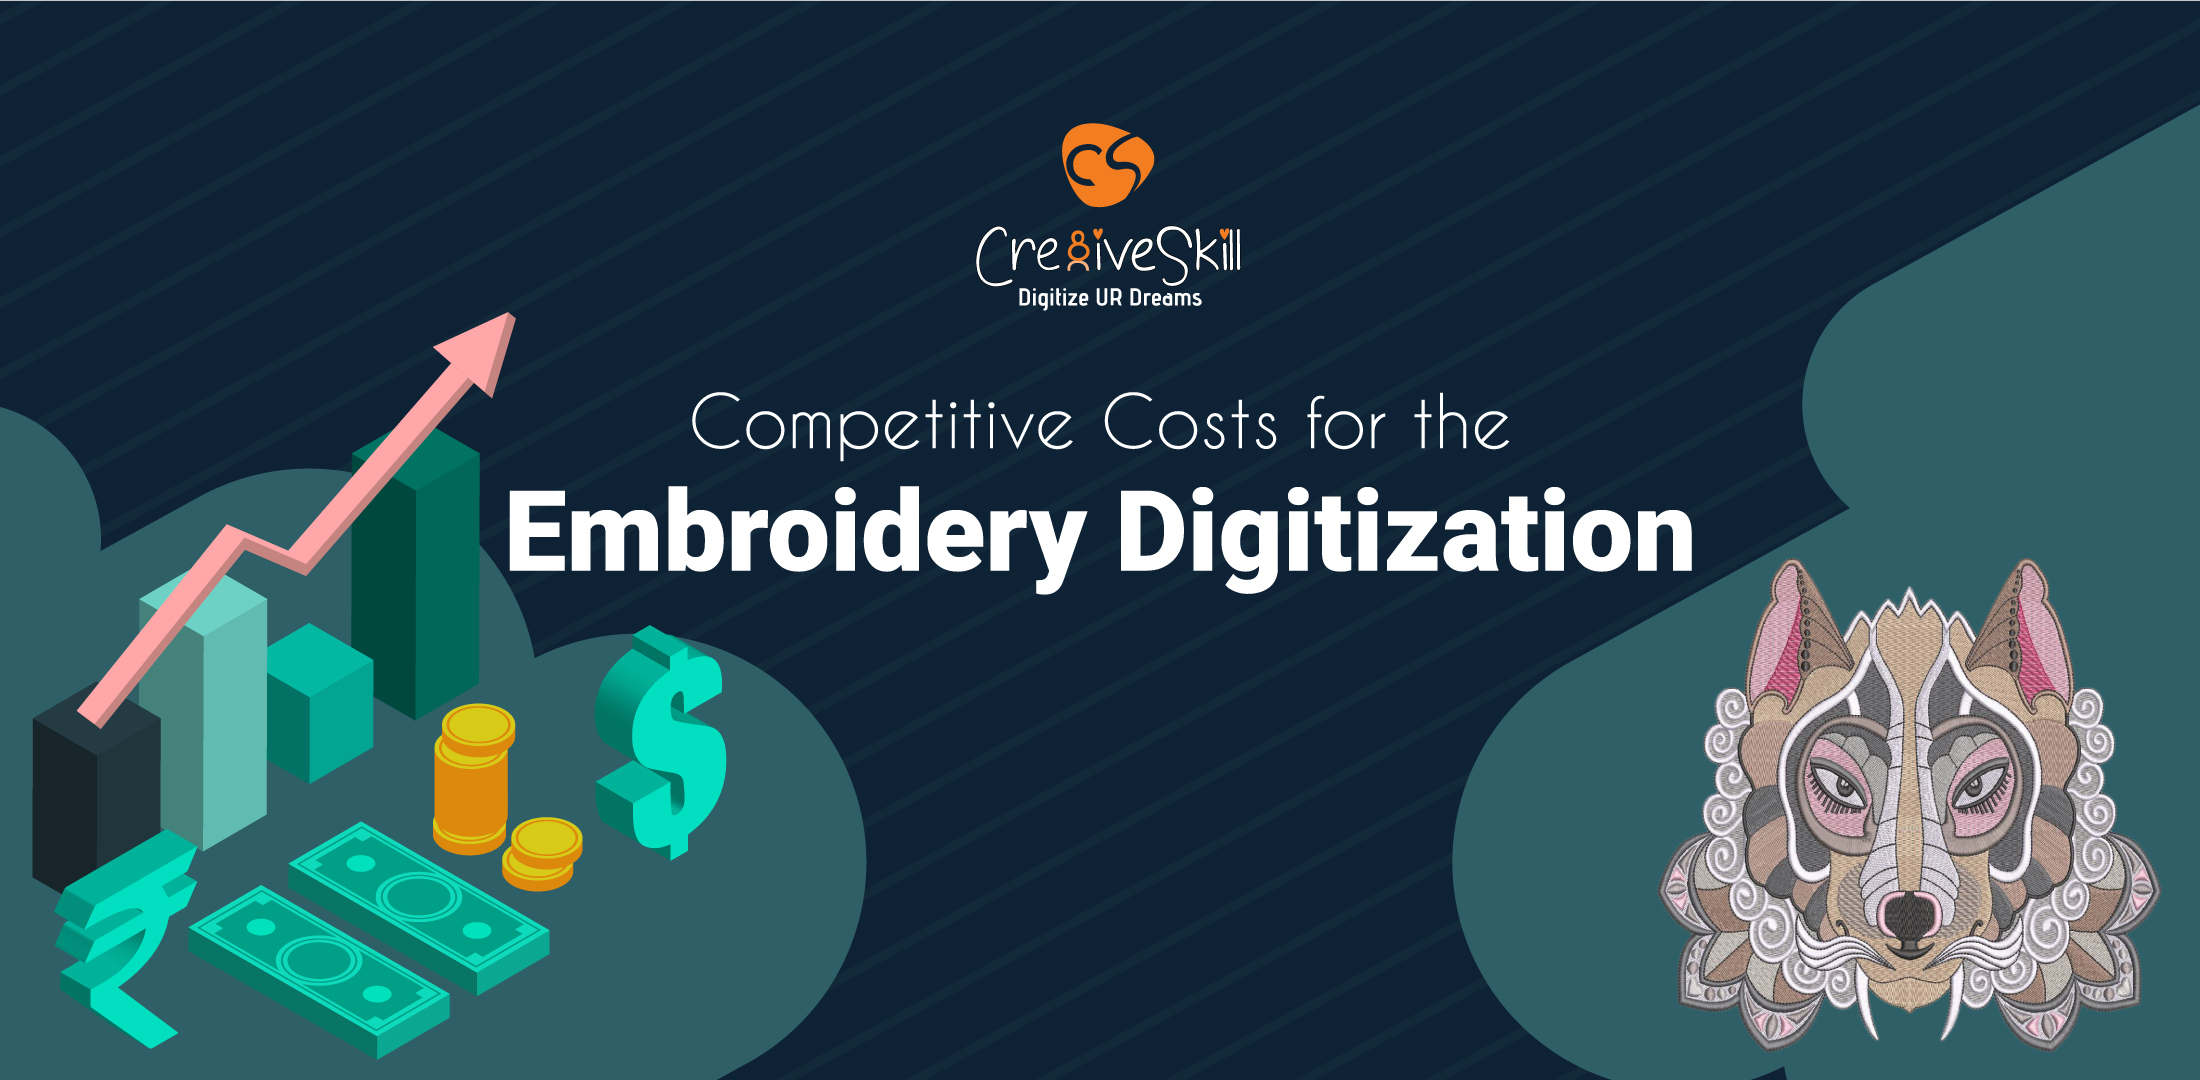 Cre8iveskill's Competitive Costs for the Embroidery Digitization